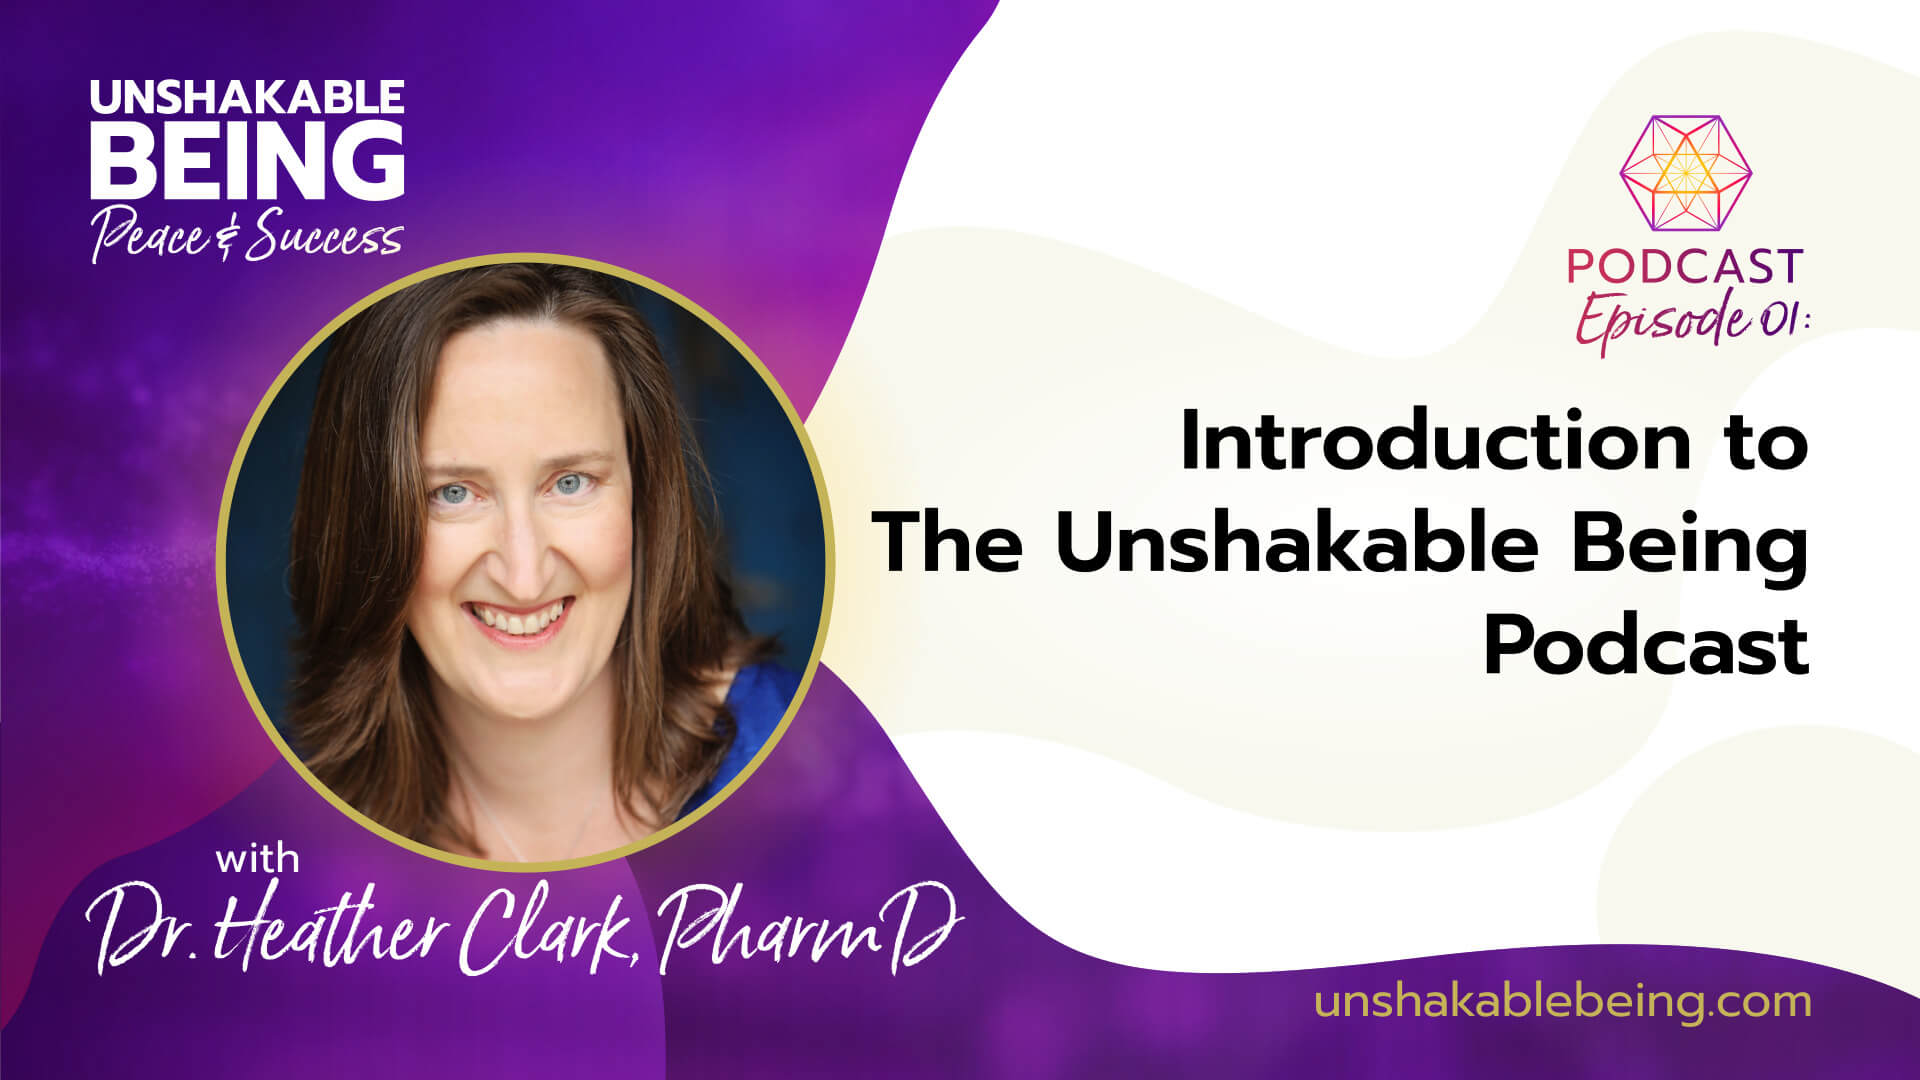 Intro to the Unshakable Being Podcast